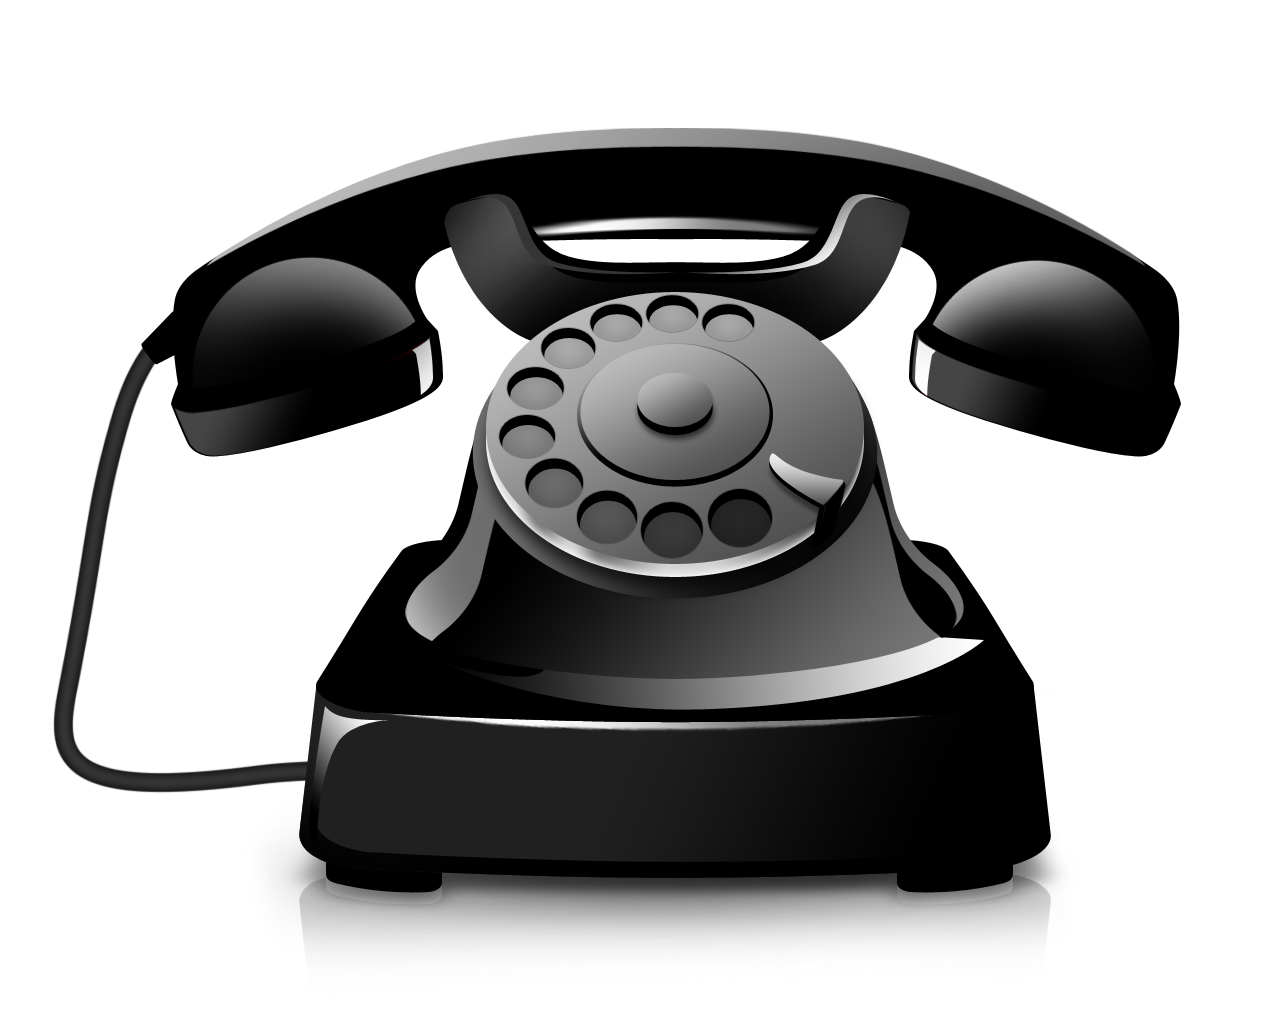 Png transparent images all. Telephone clipart analog phone